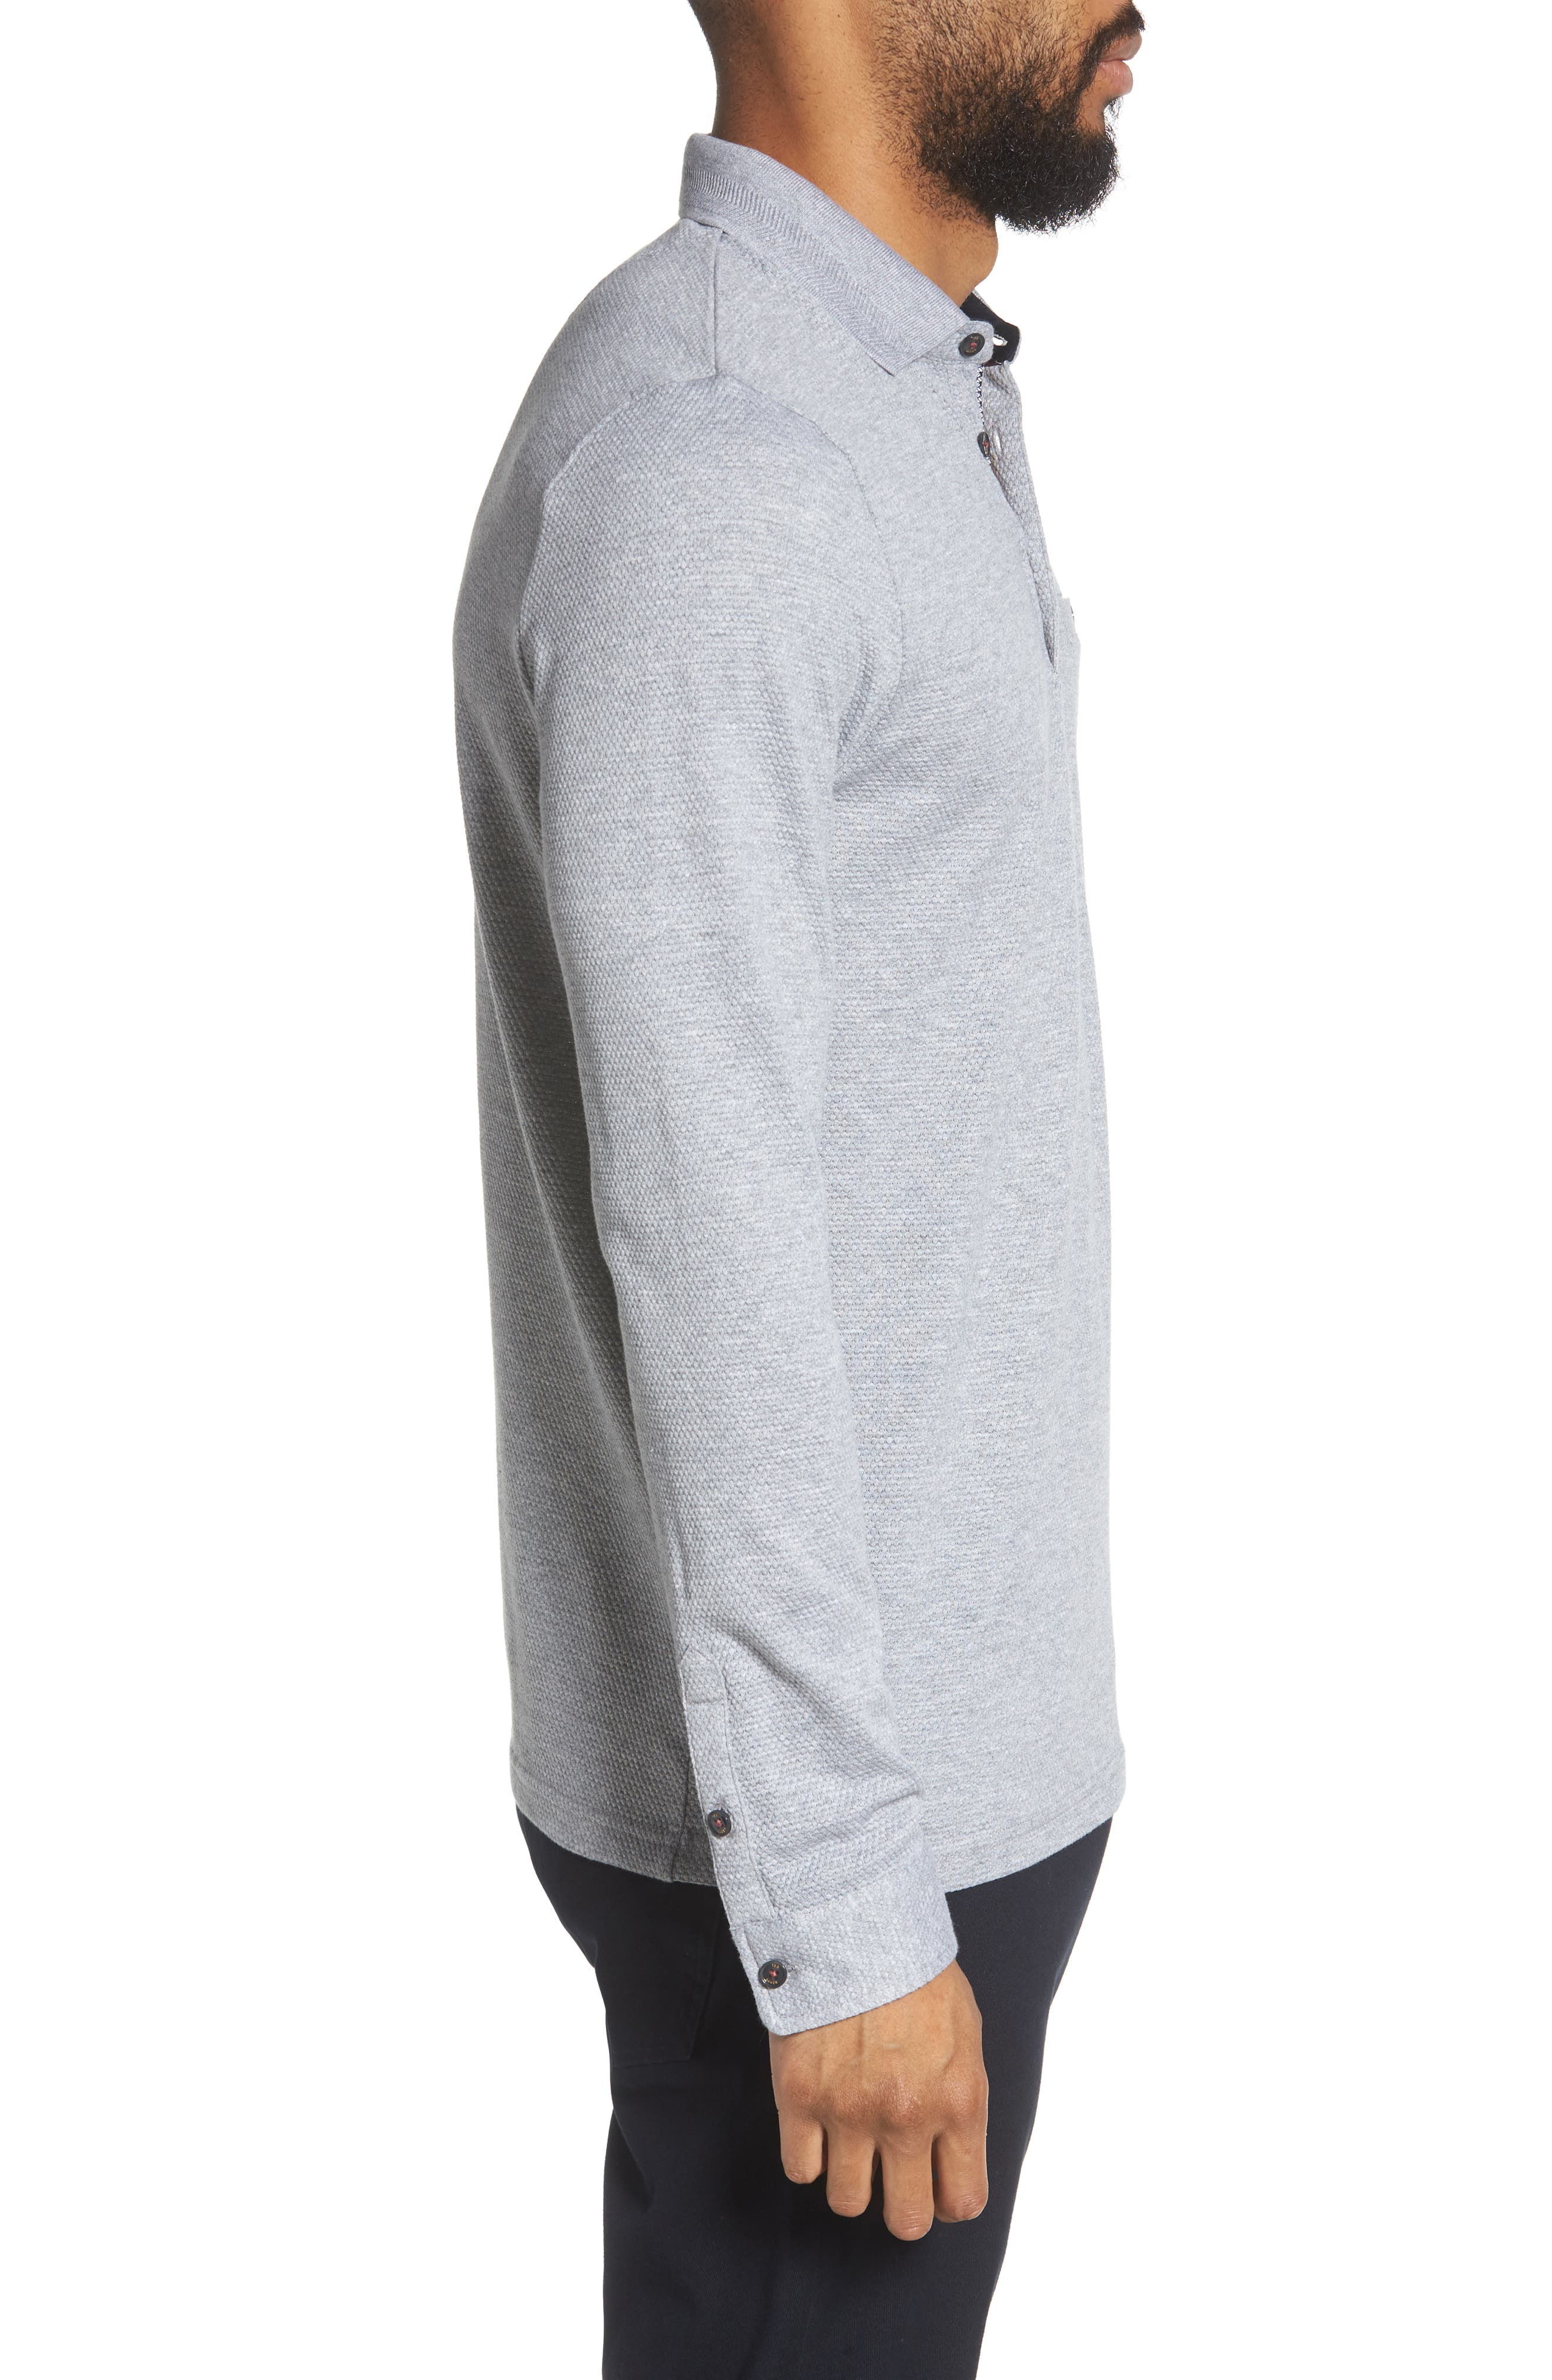 Scooby Trim Fit Long Sleeve Polo Shirt,                             Alternate thumbnail 3, color,                             Grey Marl